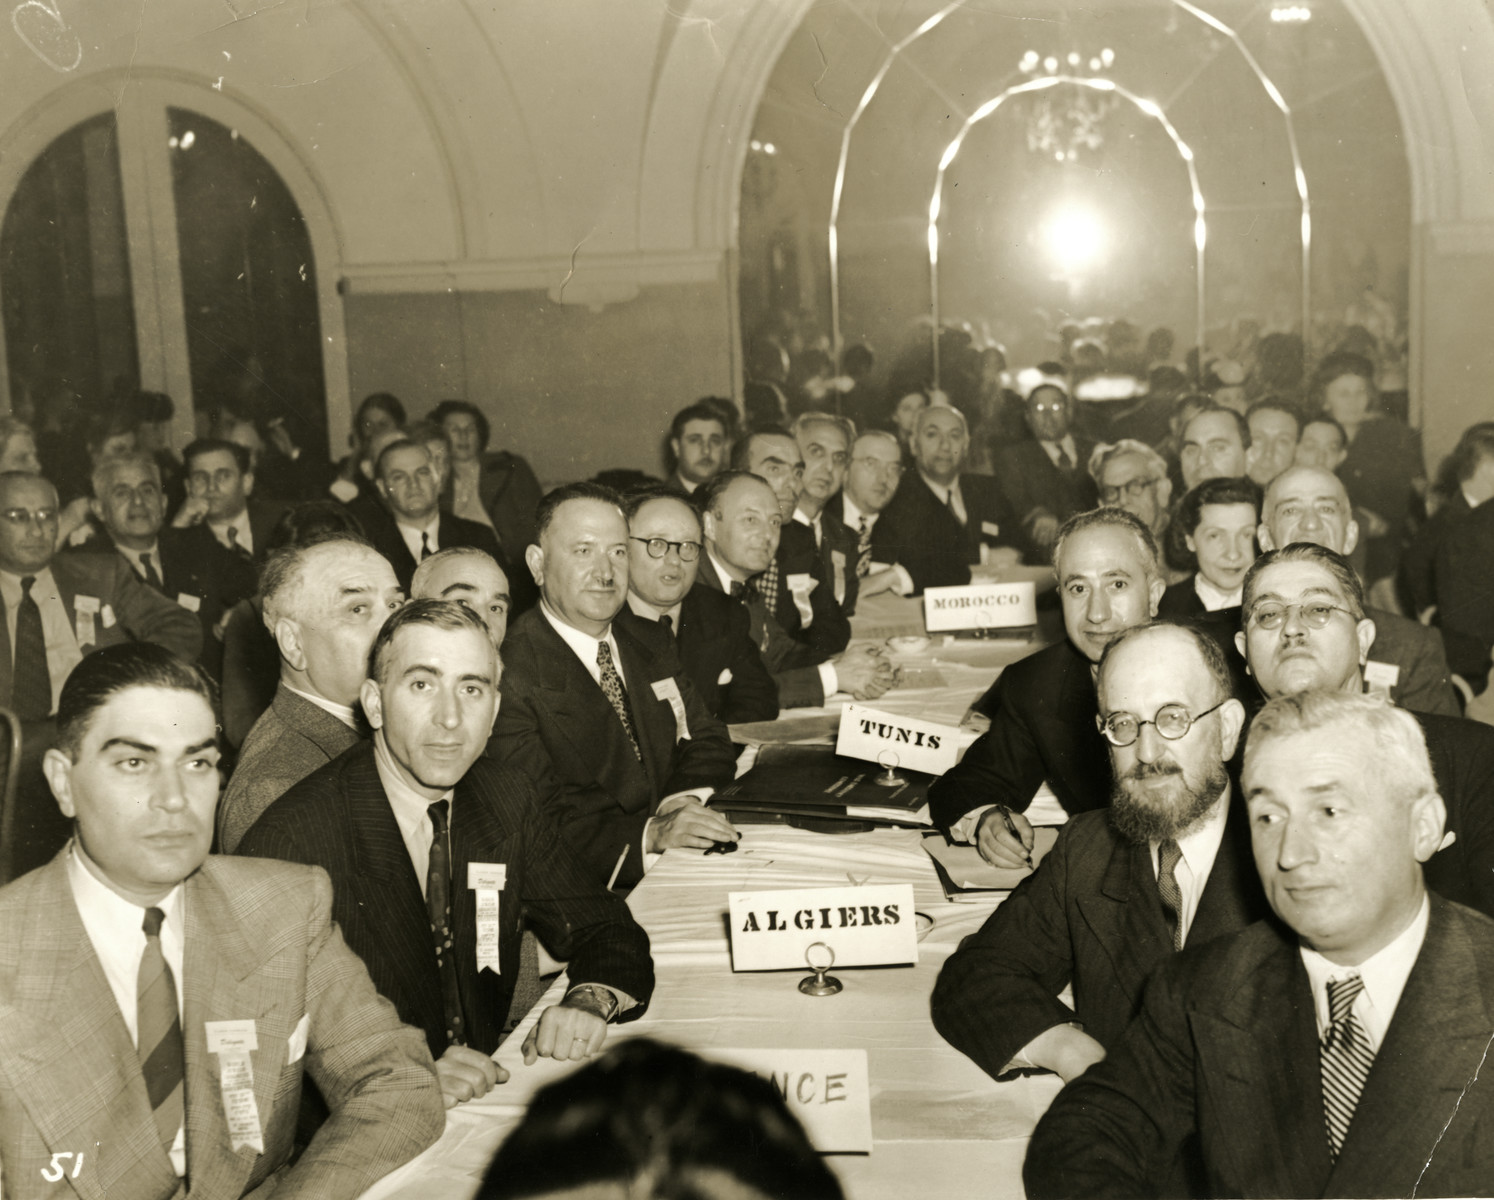 Delegates from North Africa attend the 1944 War Emergency Conference of the World Jewish Congress.  Prosper Cohen is seated eighth from the right.